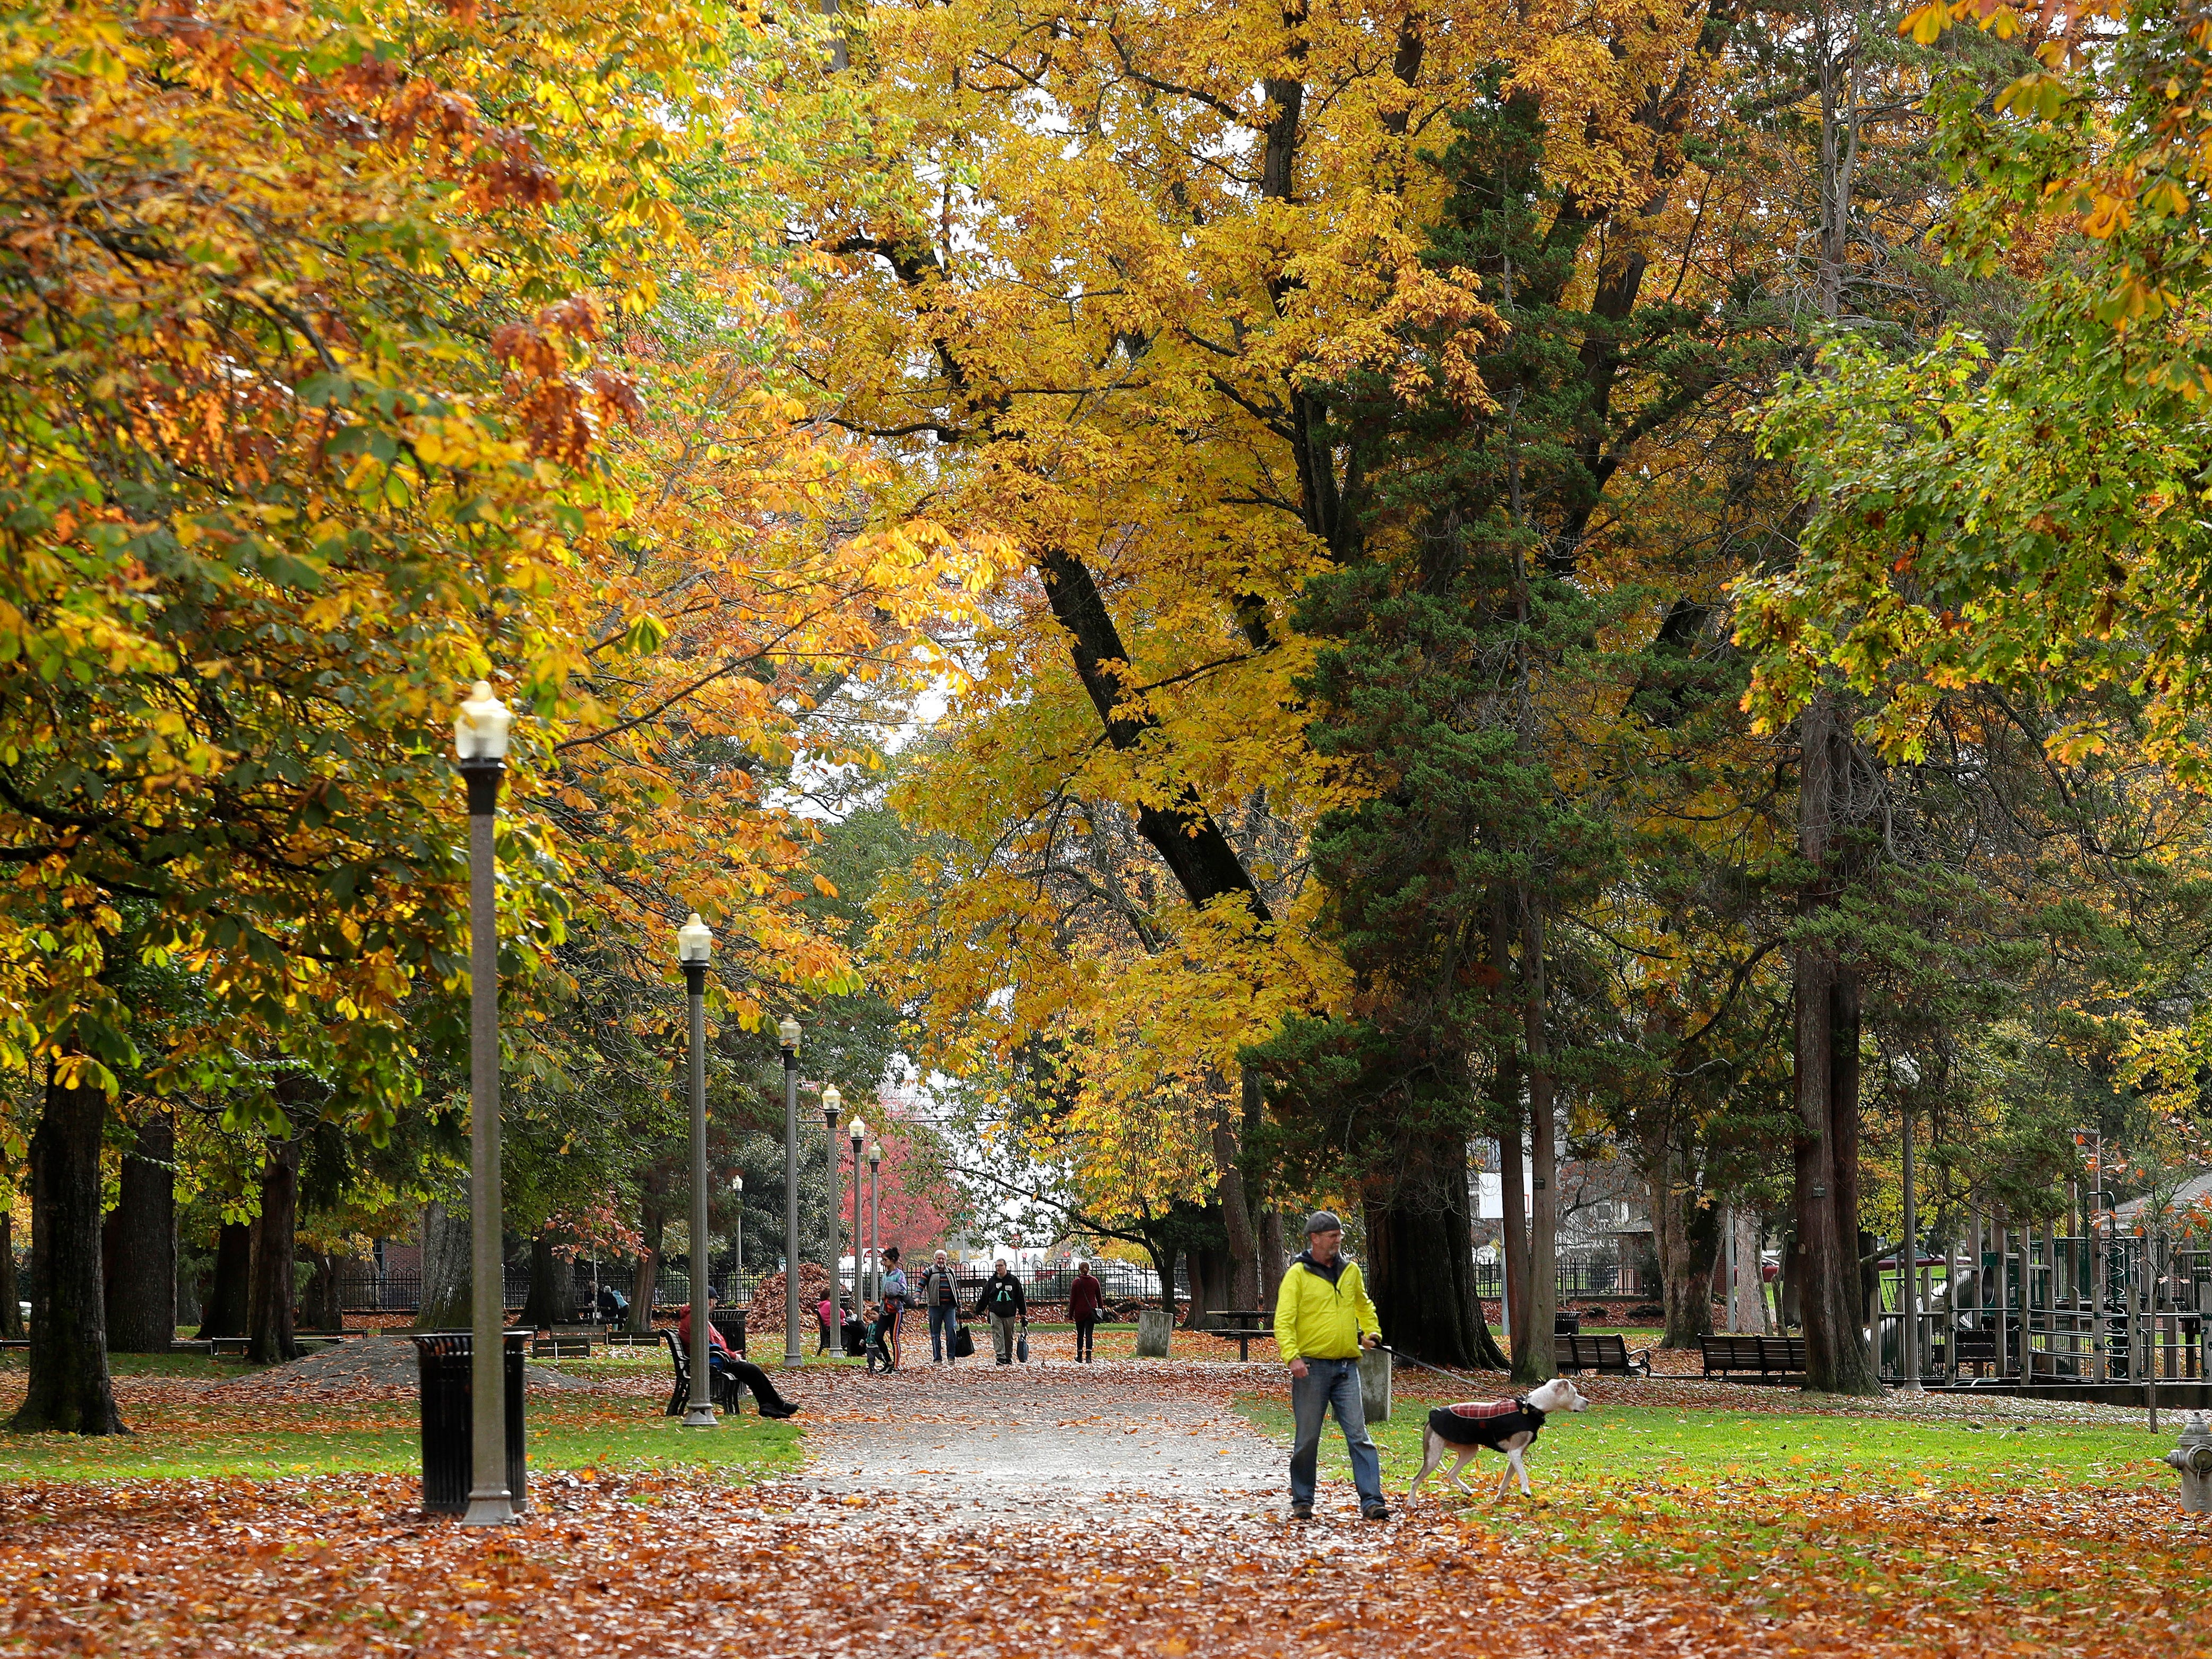 Pedestrians walk along a leaf-covered walkway as they enjoy the fall colors at Wright Park in Tacoma, Wash., Friday, Oct. 26, 2018.